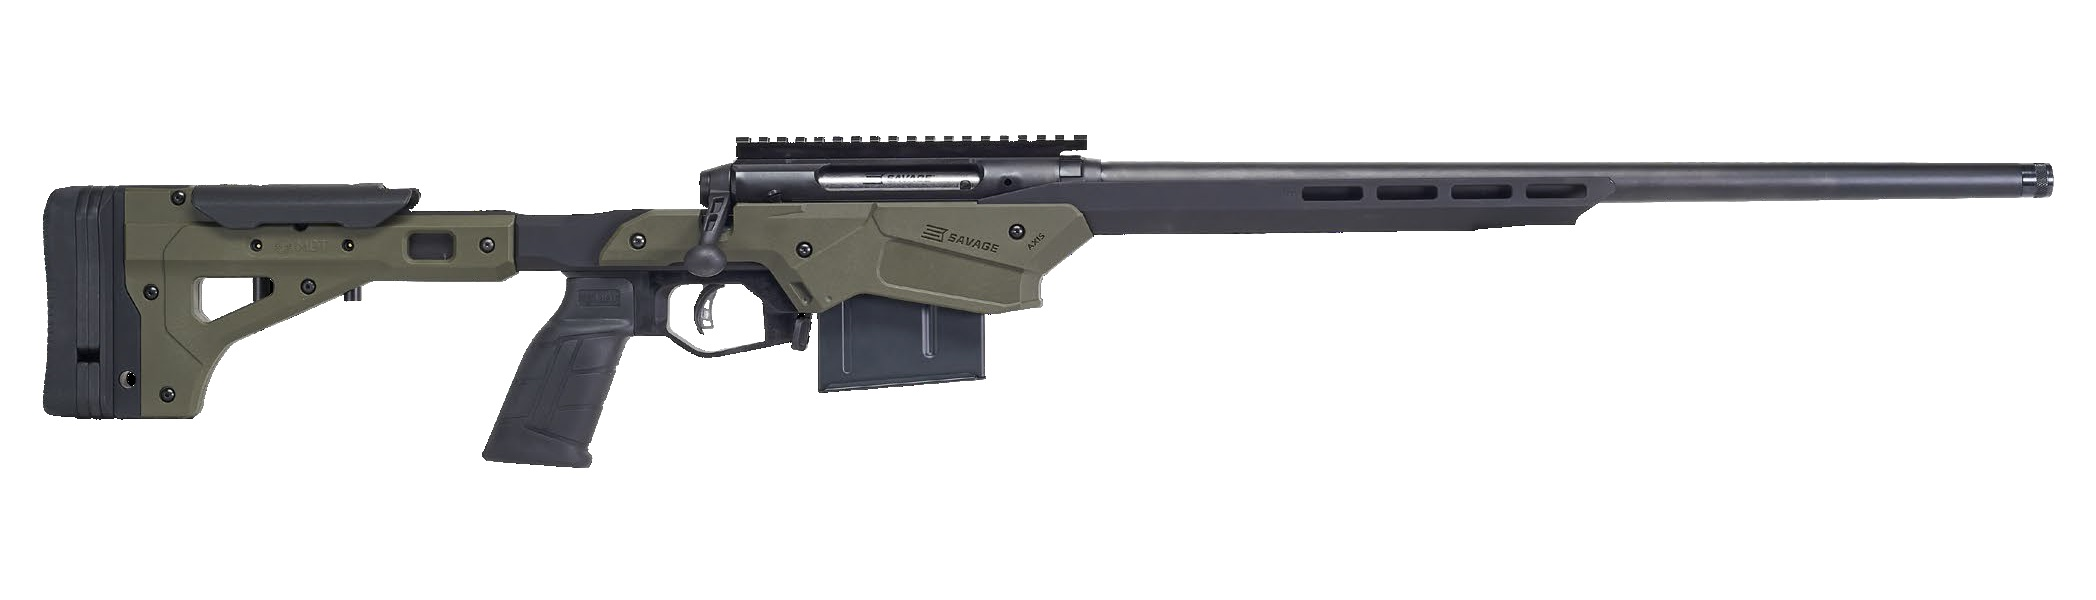 Savage Arms Axis II Precision 6.5 Creedmoor